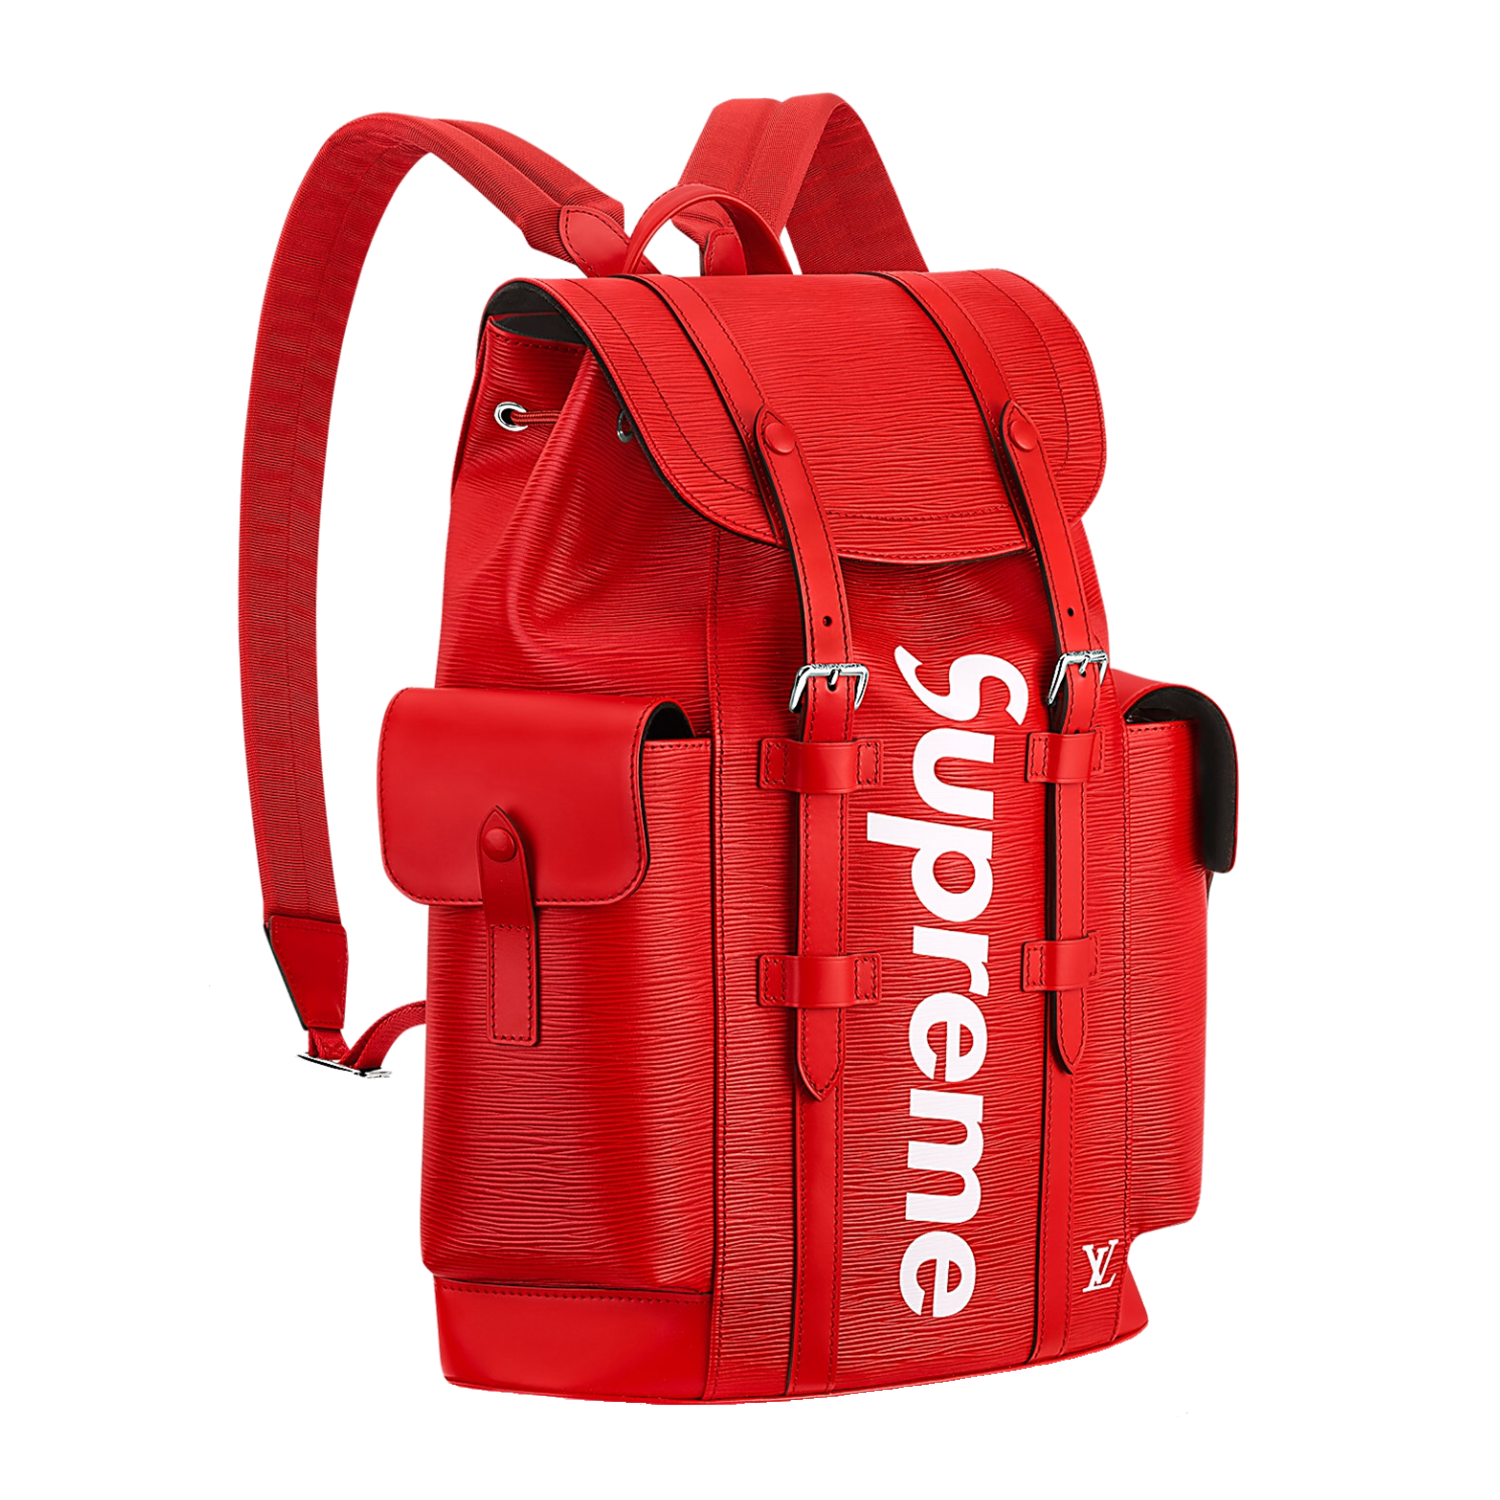 SUPREME CHRISTOPHER  - €2960 $3900M53414EPI RED